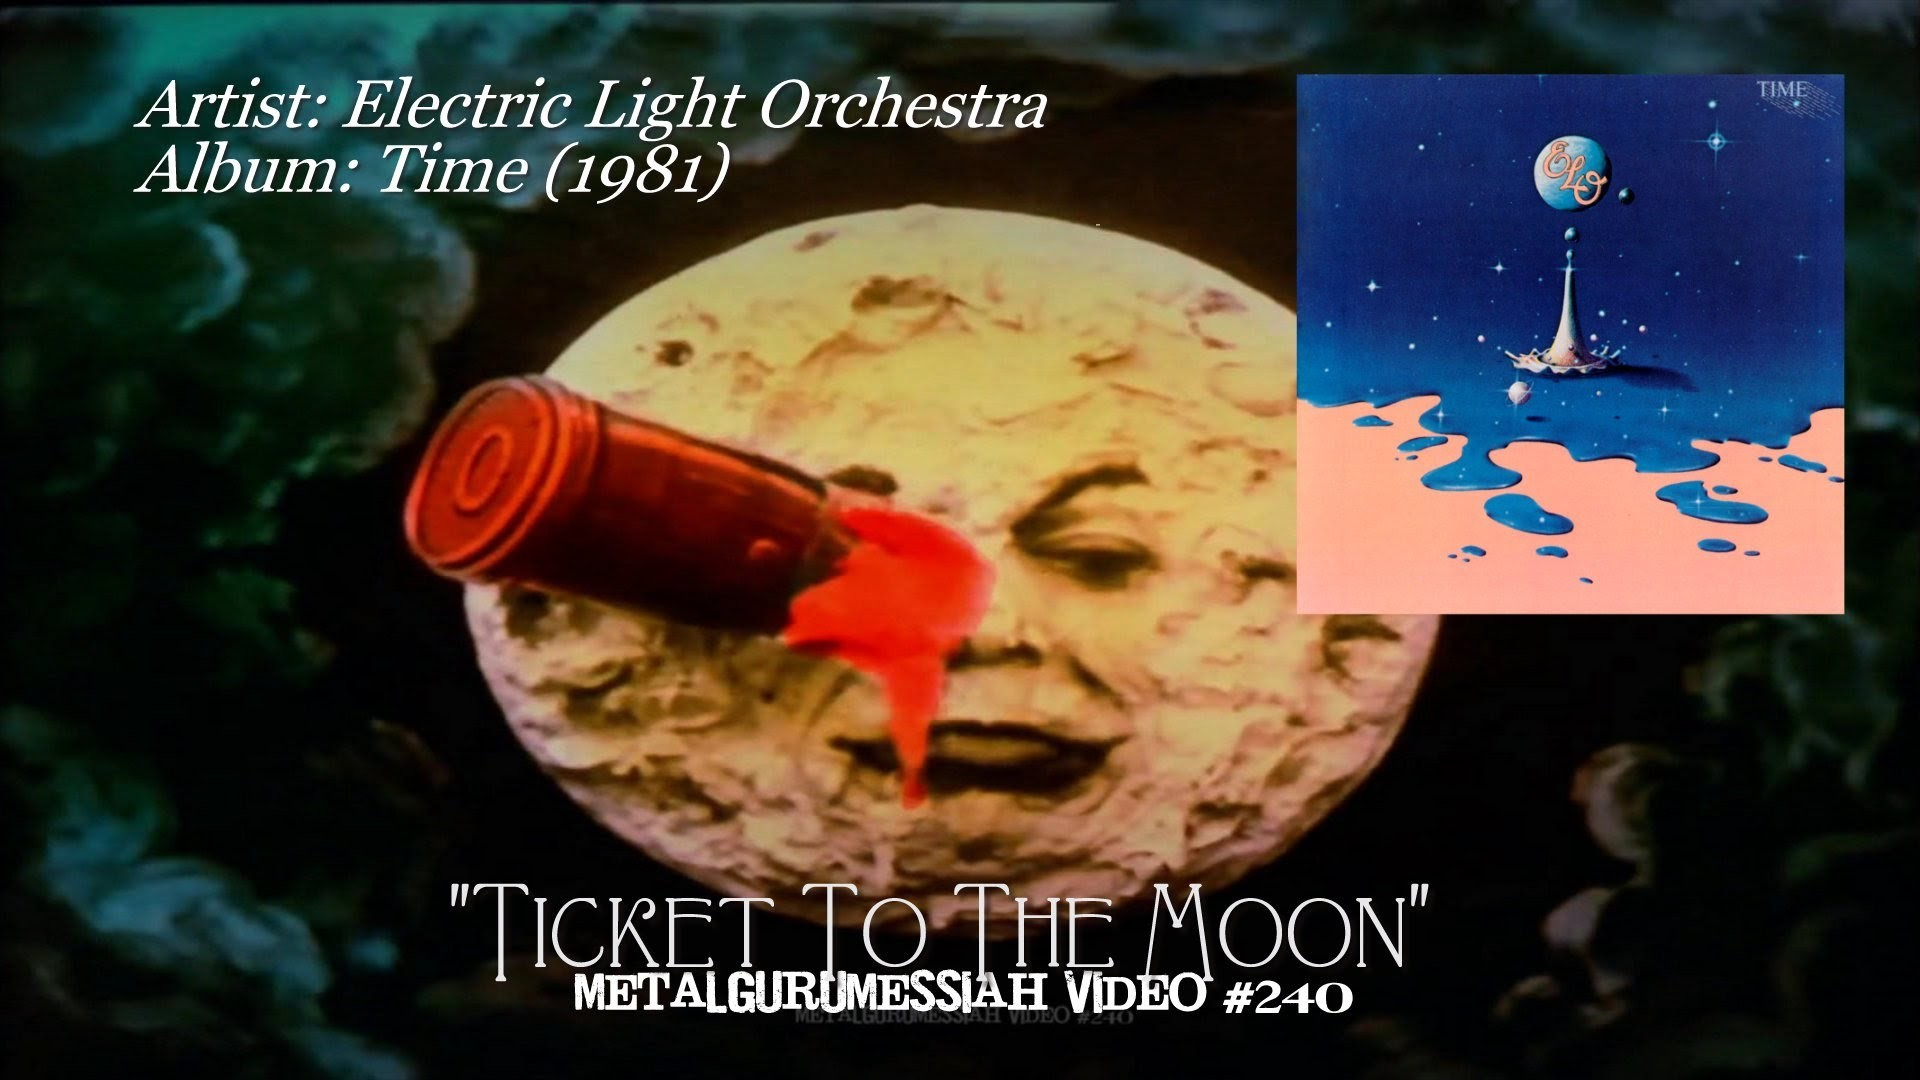 1920x1080 Ticket To The Moon - Electric Light Orchestra (1981) HD FLAC  ~MetalGuruMessiah~ - YouTube